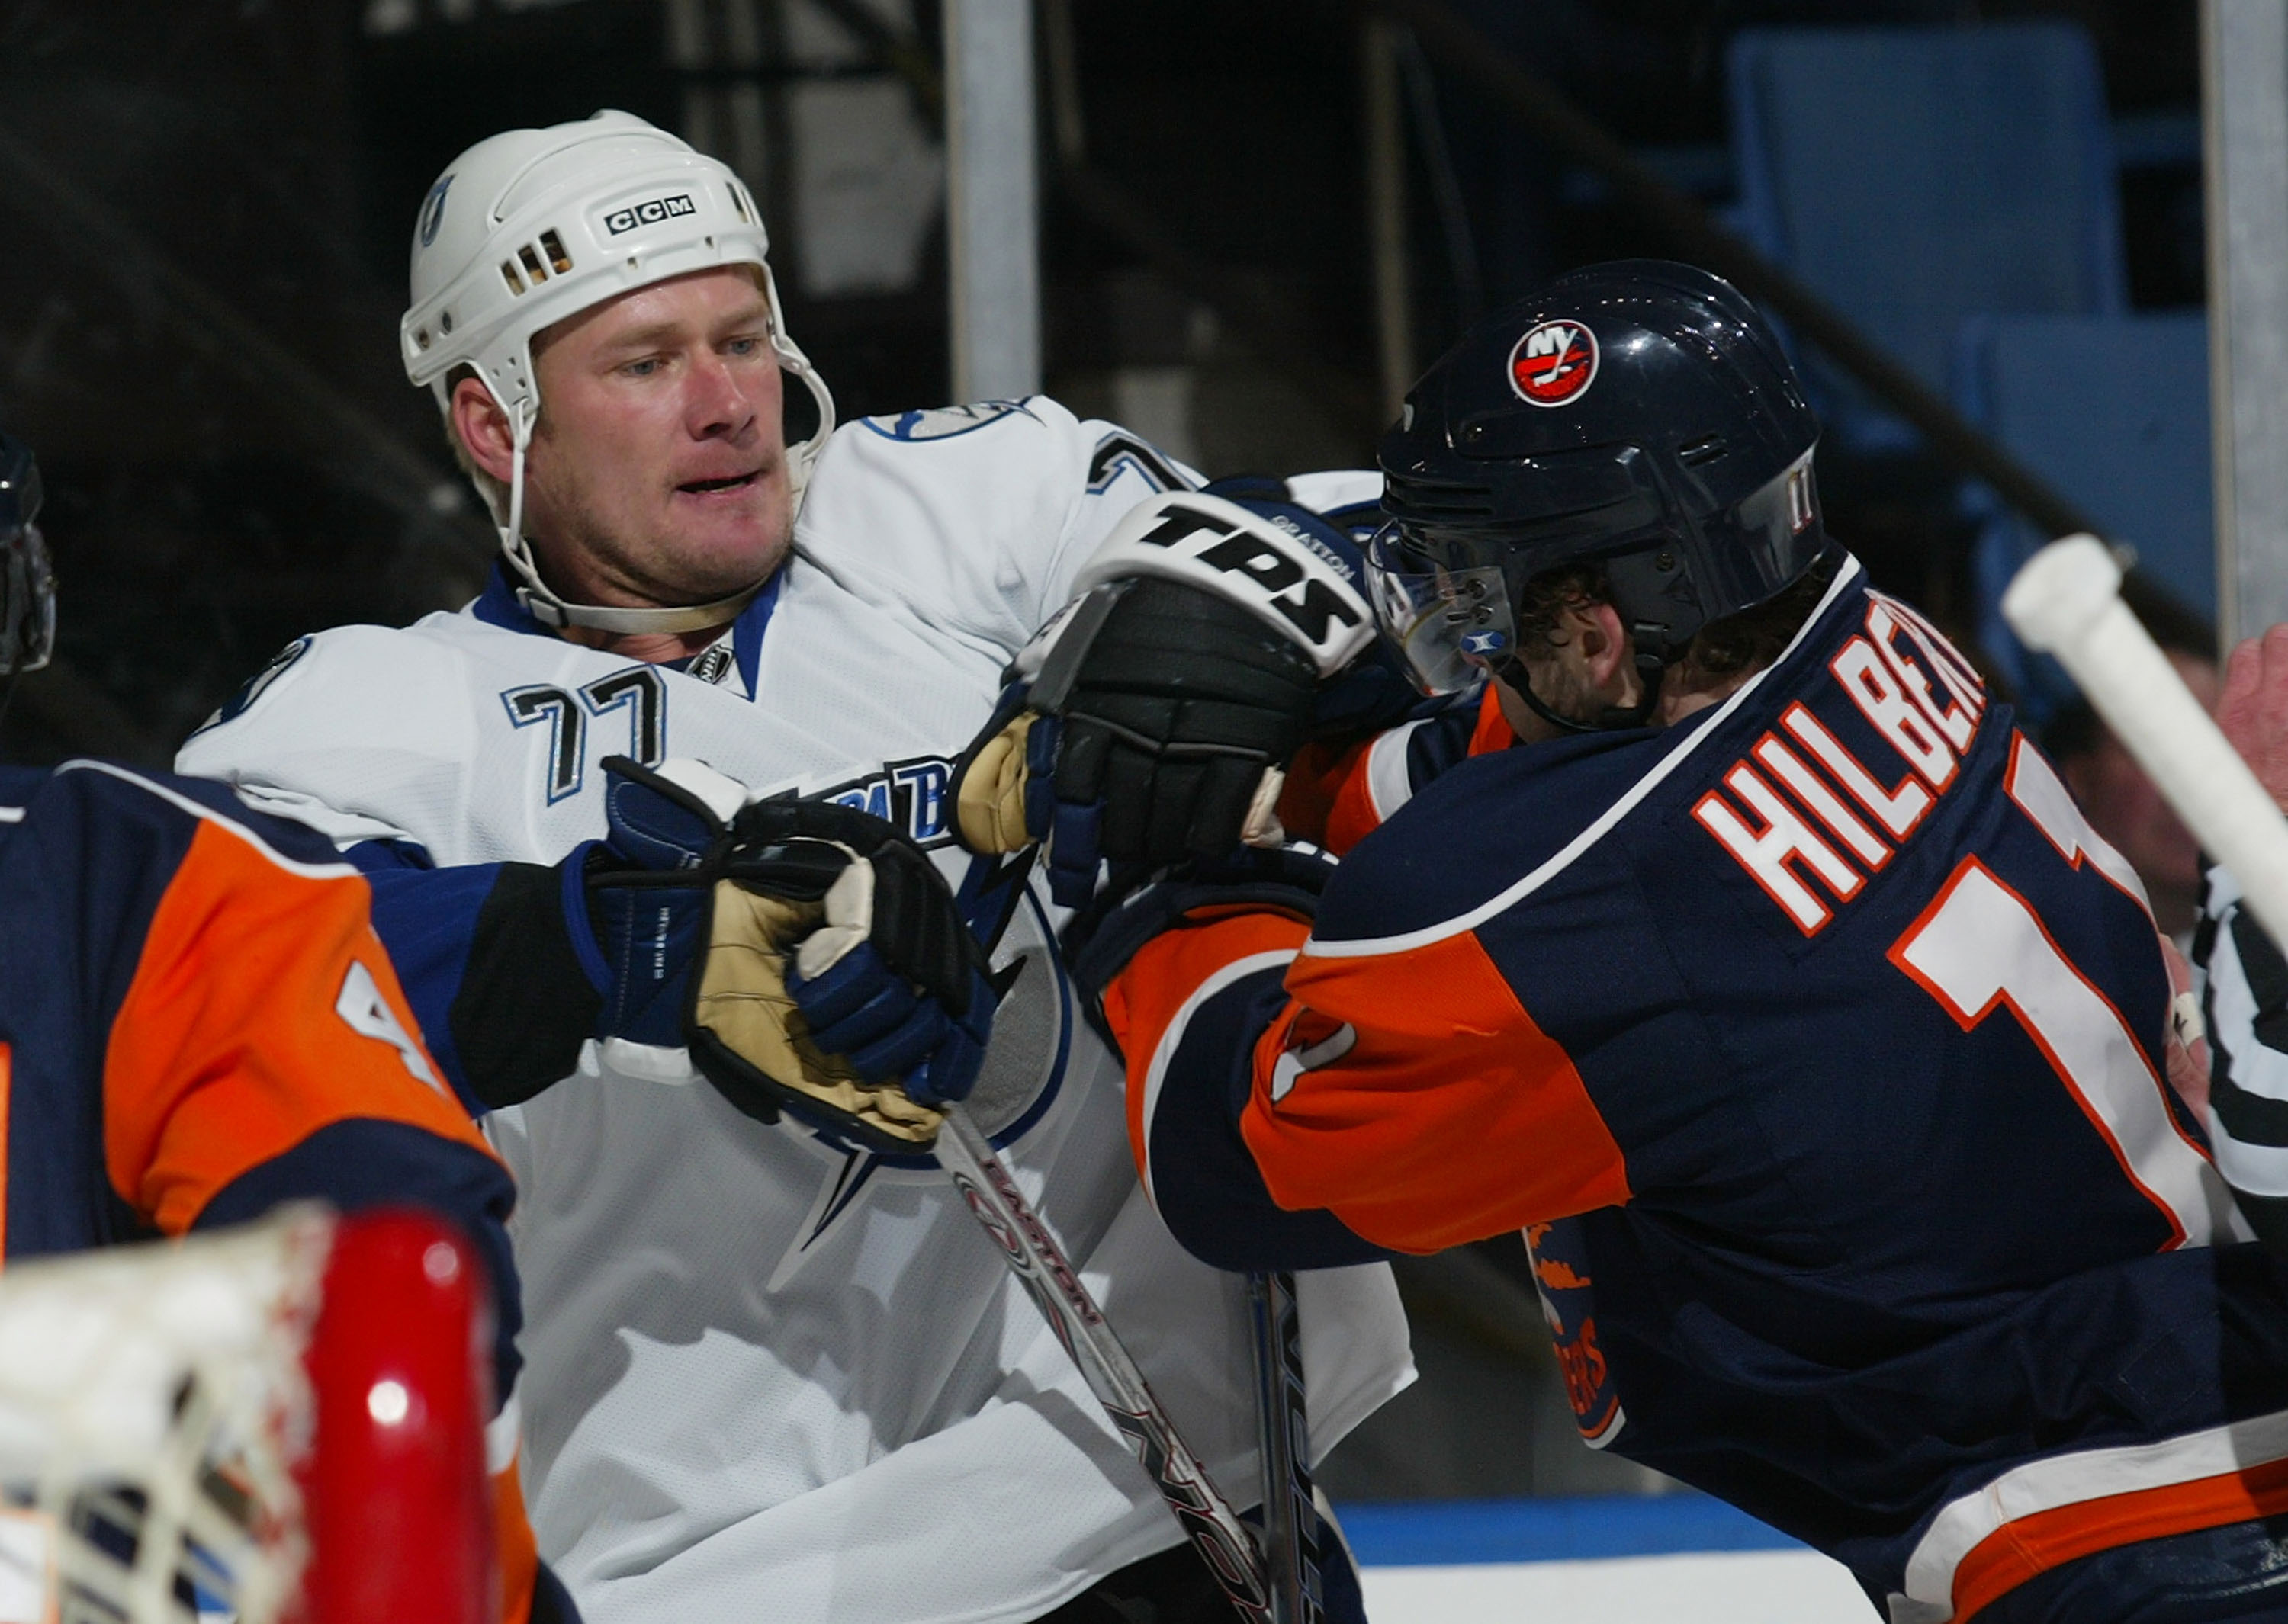 UNIONDALE, NY - FEBRUARY 21: Chris Gratton #77 of the Tampa Bay Lightning is pushed out of the crease by Andy Hilbert #11 of the New York Islanders on February 21, 2008 at the Nassau Coliseum in Uniondale, New York.  (Photo by Bruce Bennett/Getty Images)